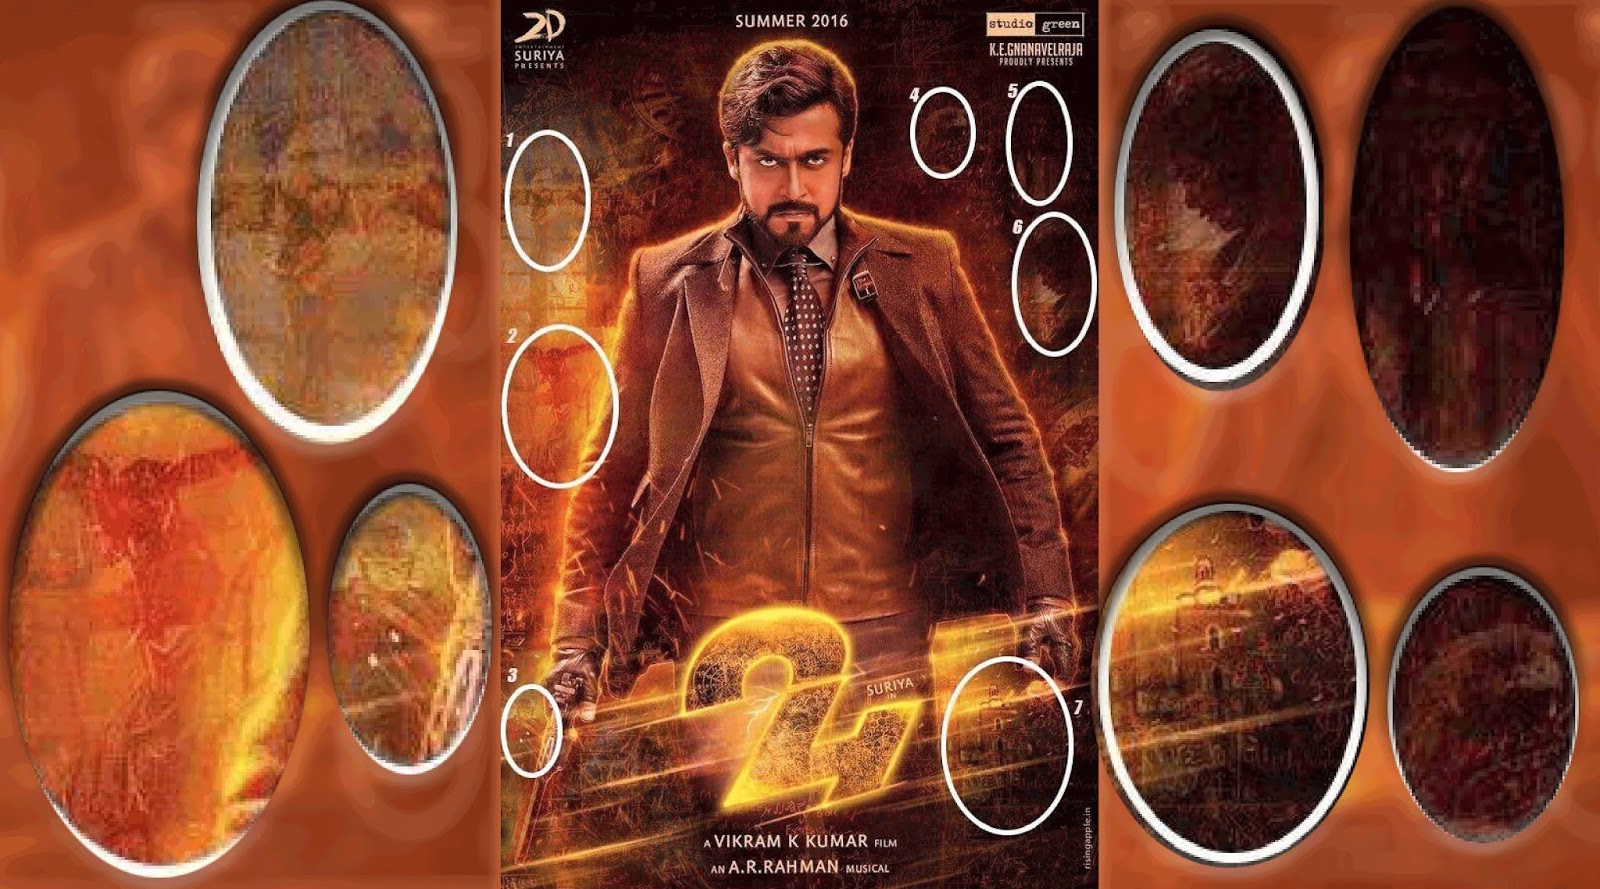 Suriya and vikram kumars 24 movie review ap and telangana movie suriyas most awaiting 24 movie flick released today i telugu and tamil languages a 2d entertainments banner and studio green proudly presents and in altavistaventures Images